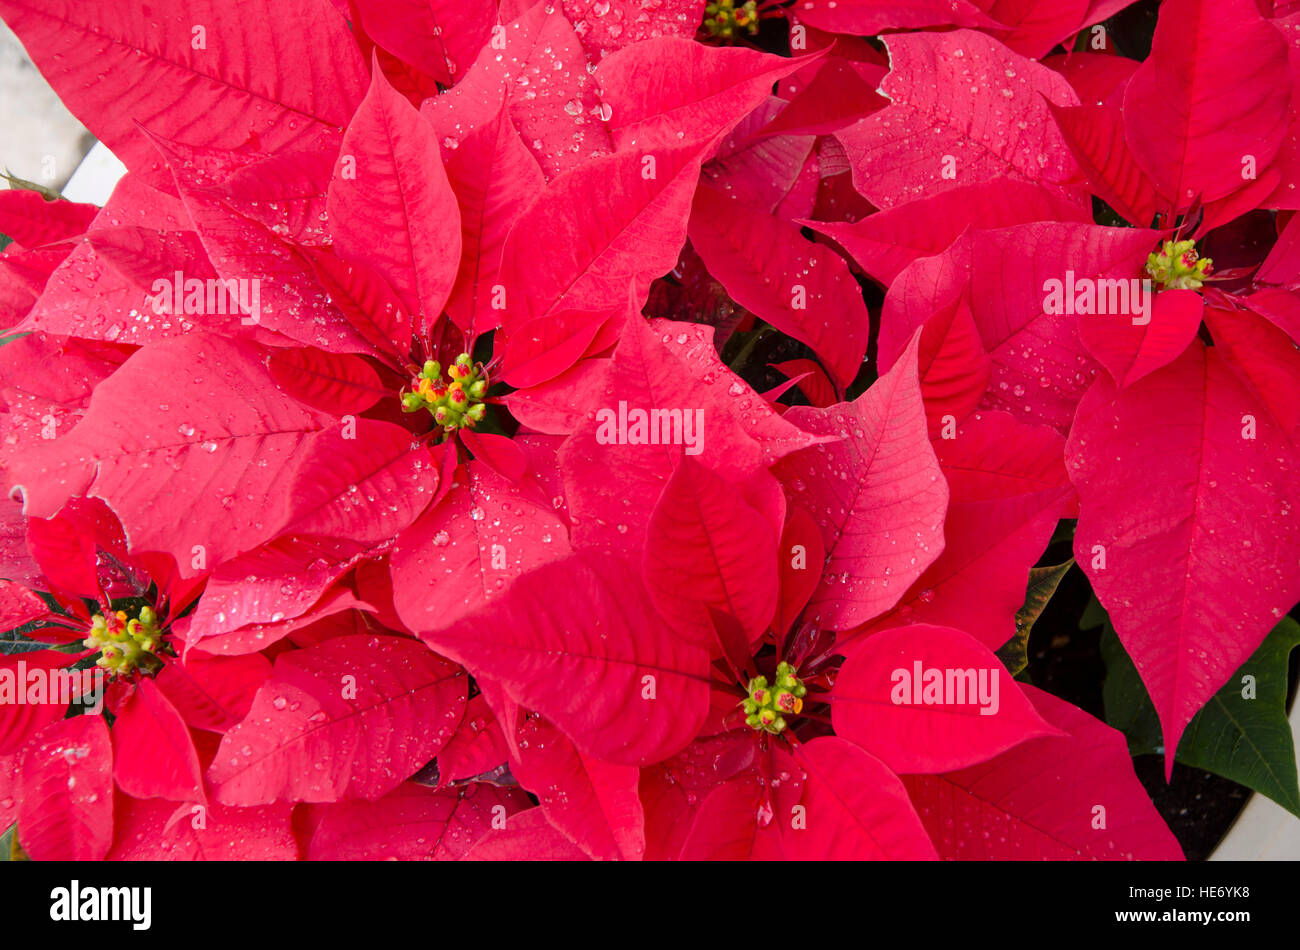 close-up-of-red-poinsettia-flowers-in-ch